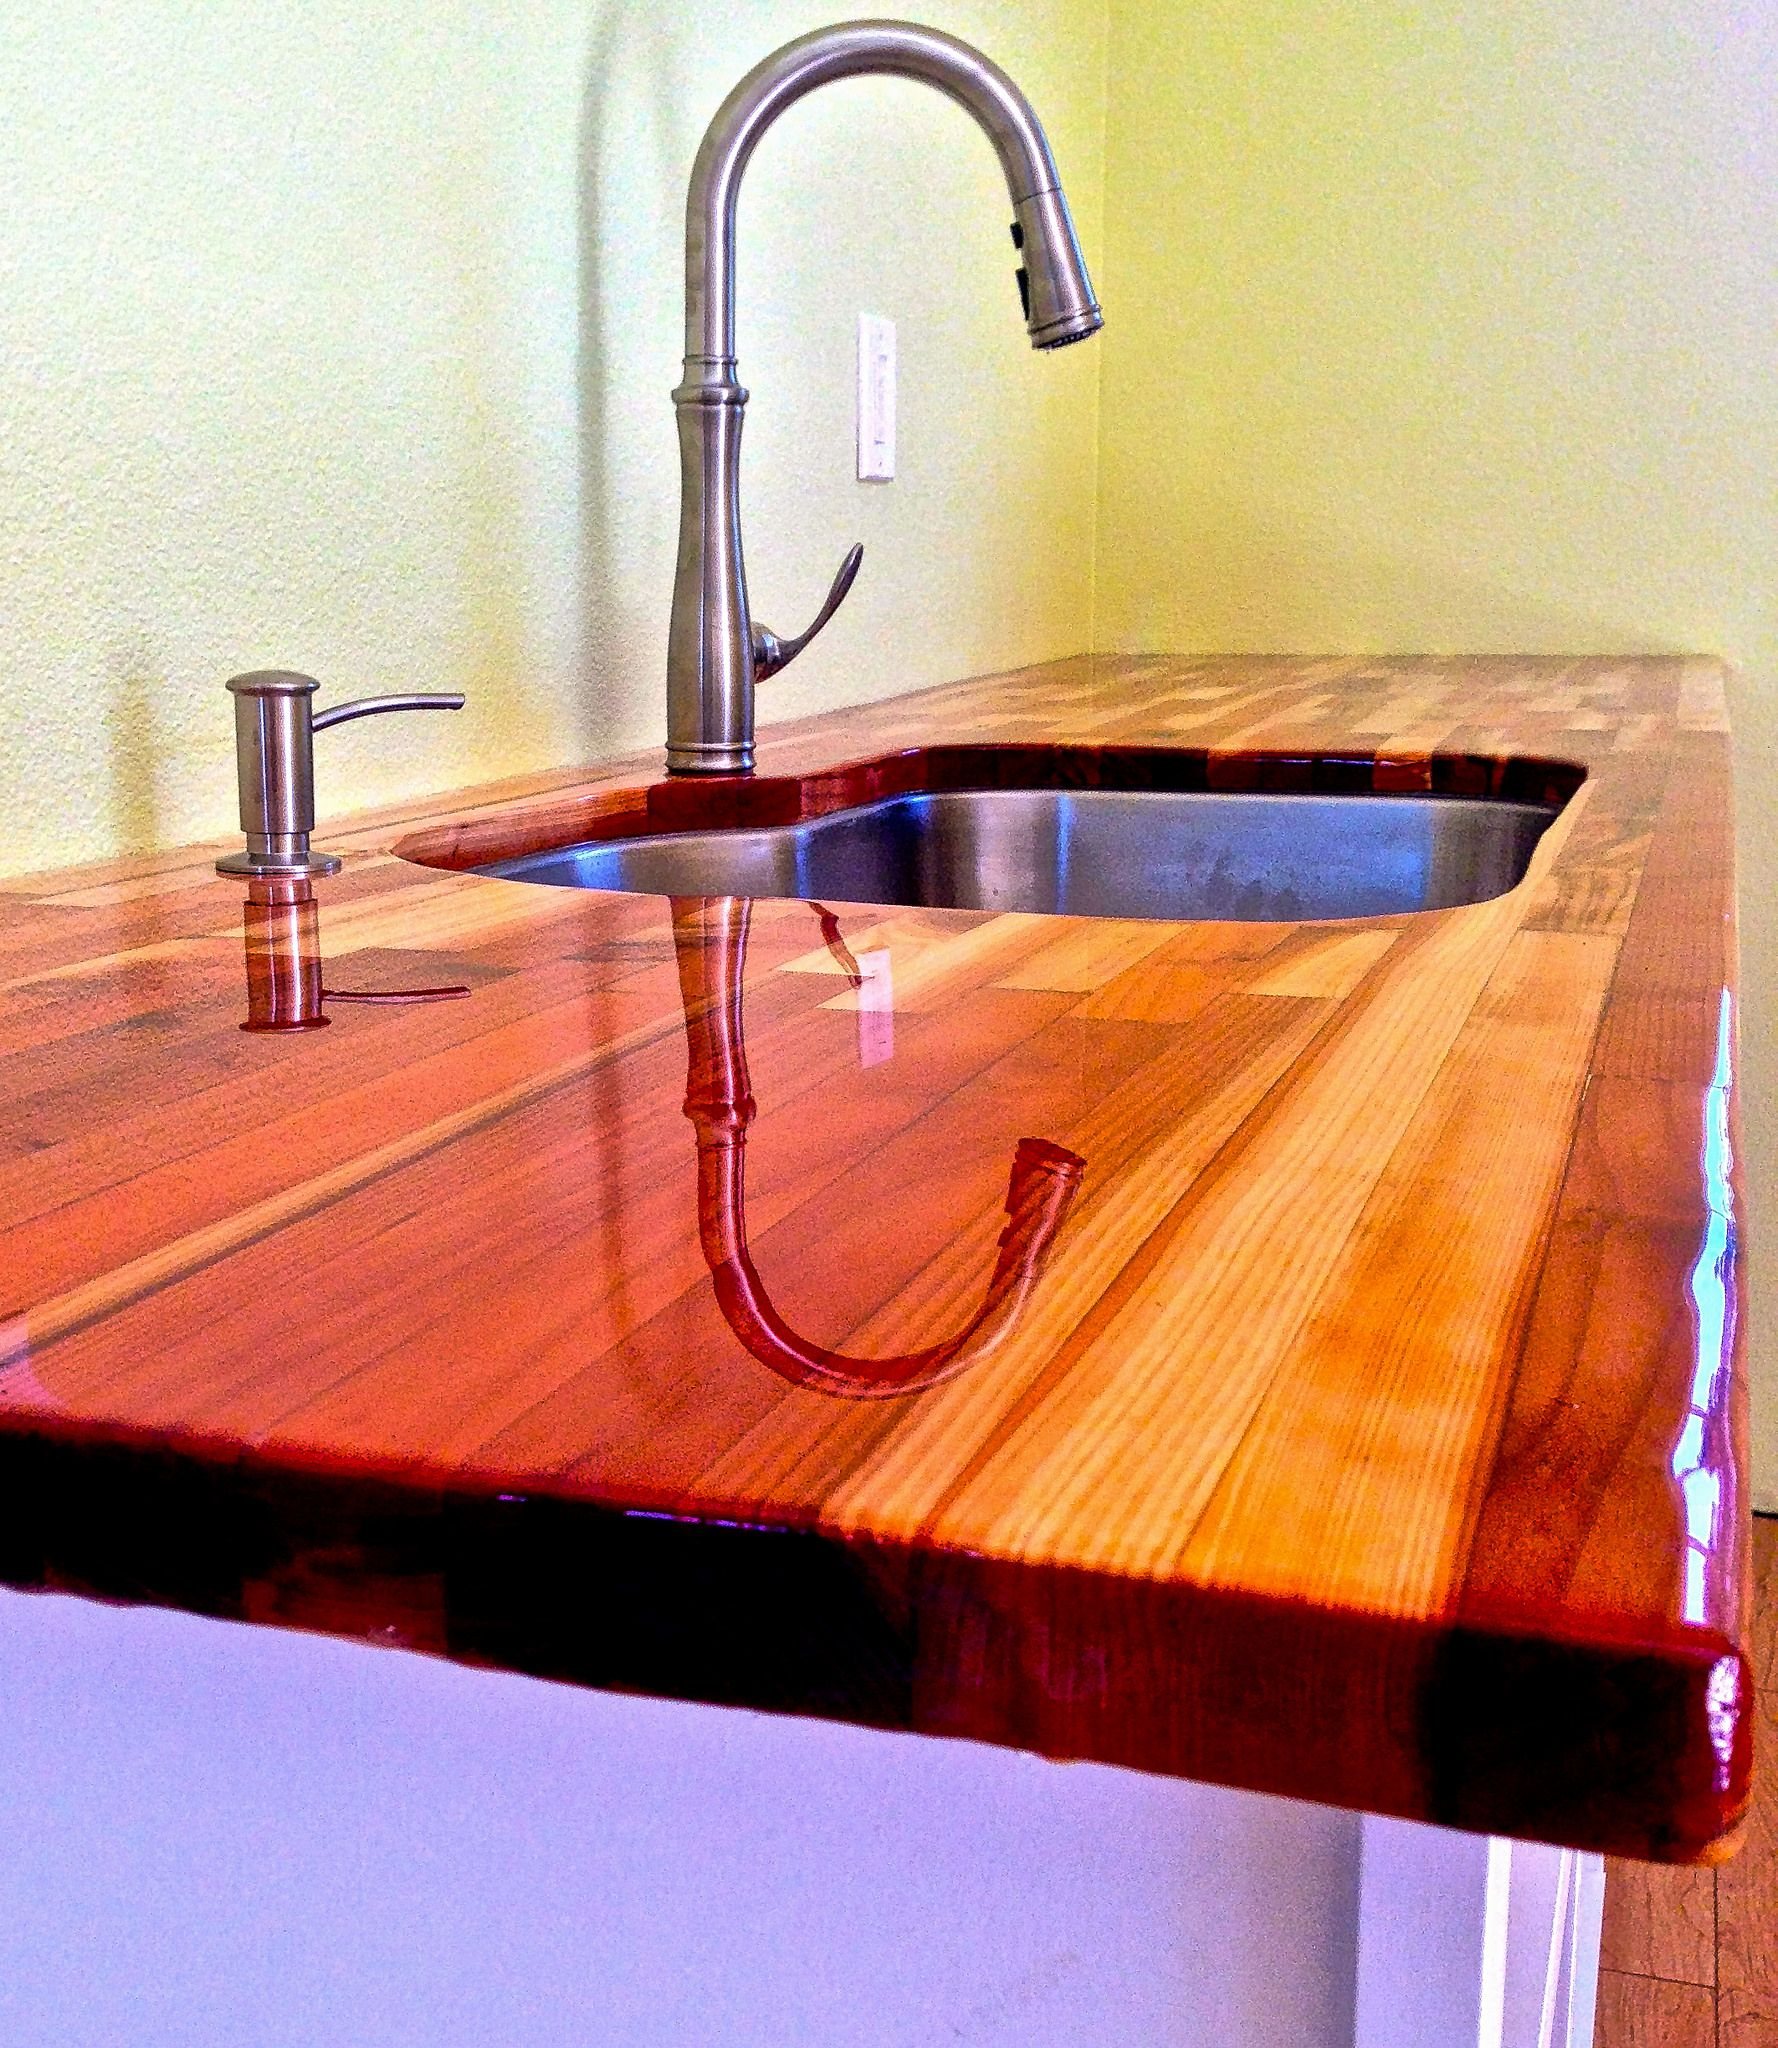 Countertop Epoxy Paint Wood Countertop With Ultraclear Epoxy Photo Gallery My